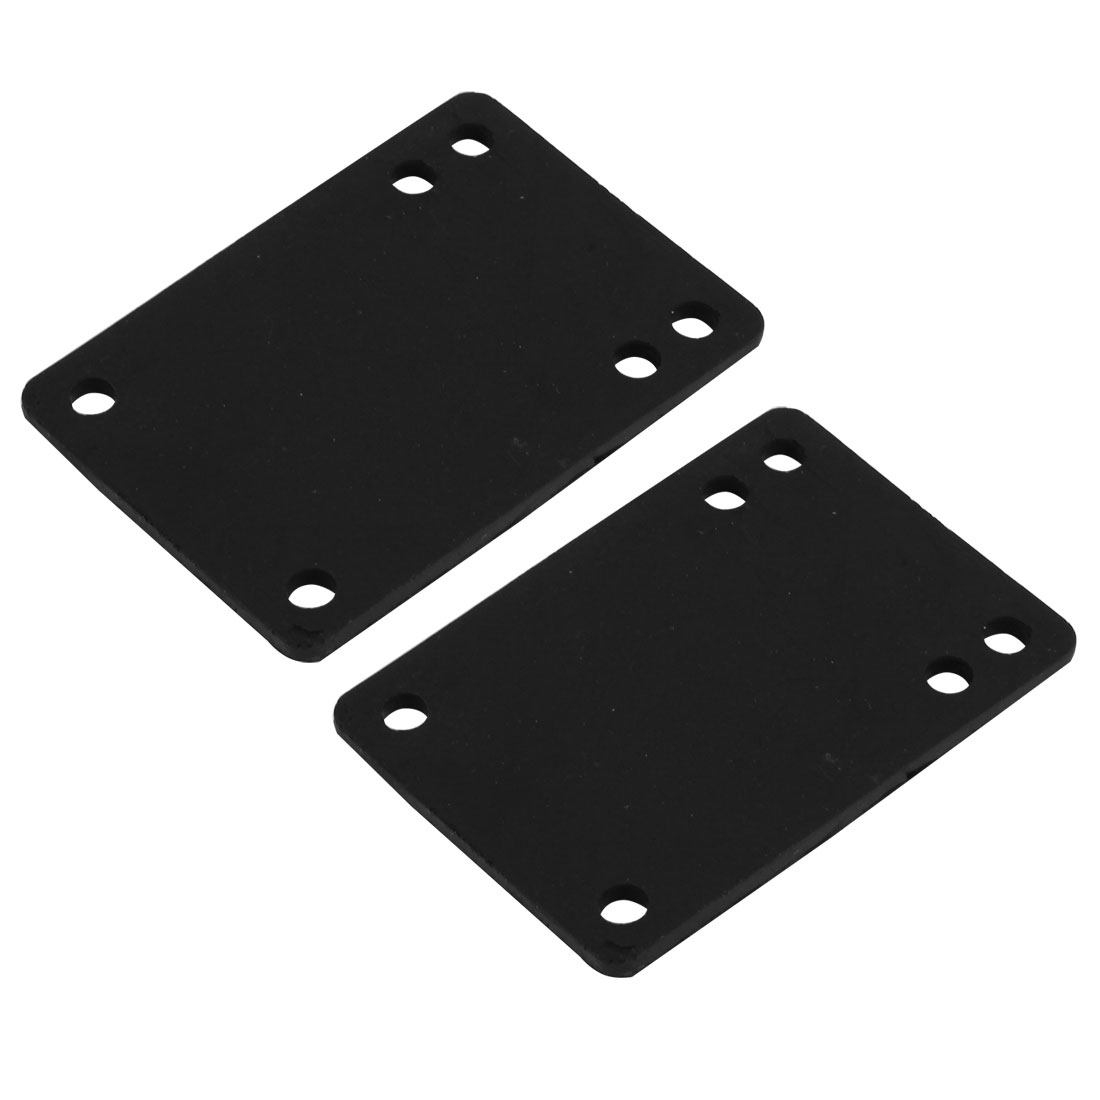 Skateboard Accessories Rubber Rectangle Shaped Riser Pad Black 3mm Thickness 2pcs